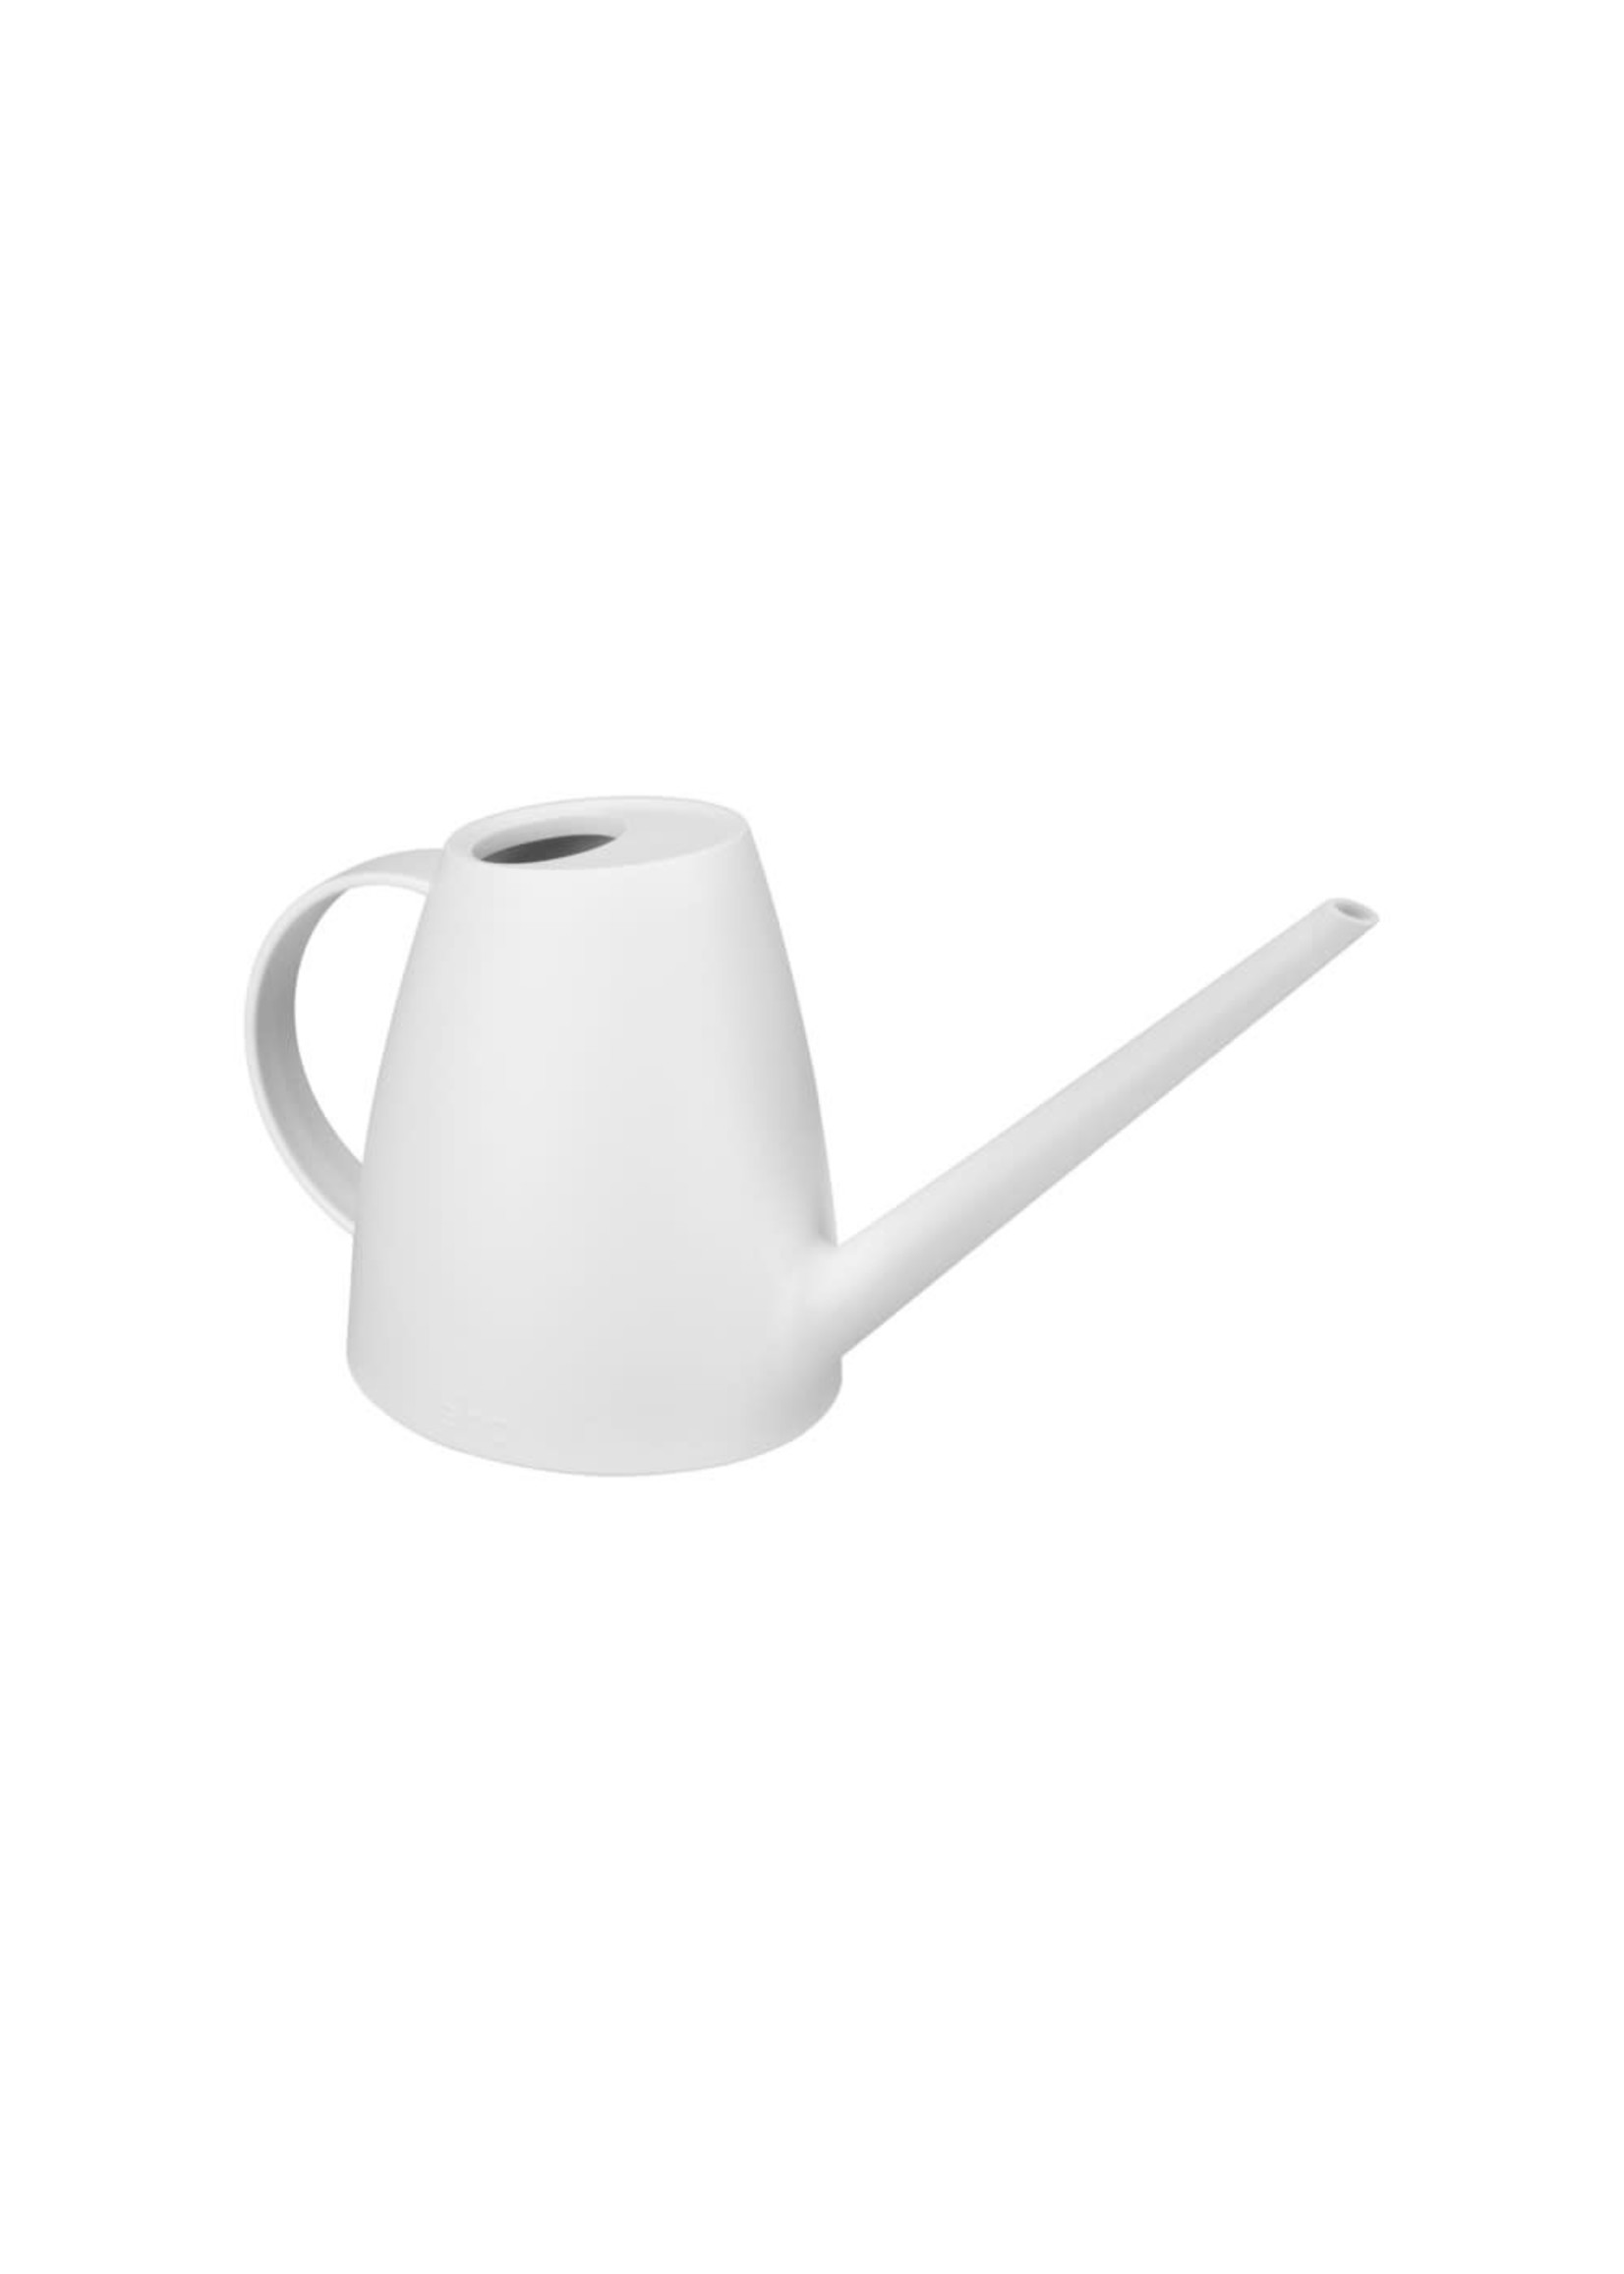 Elho Brussels Watering Can 1.8L White